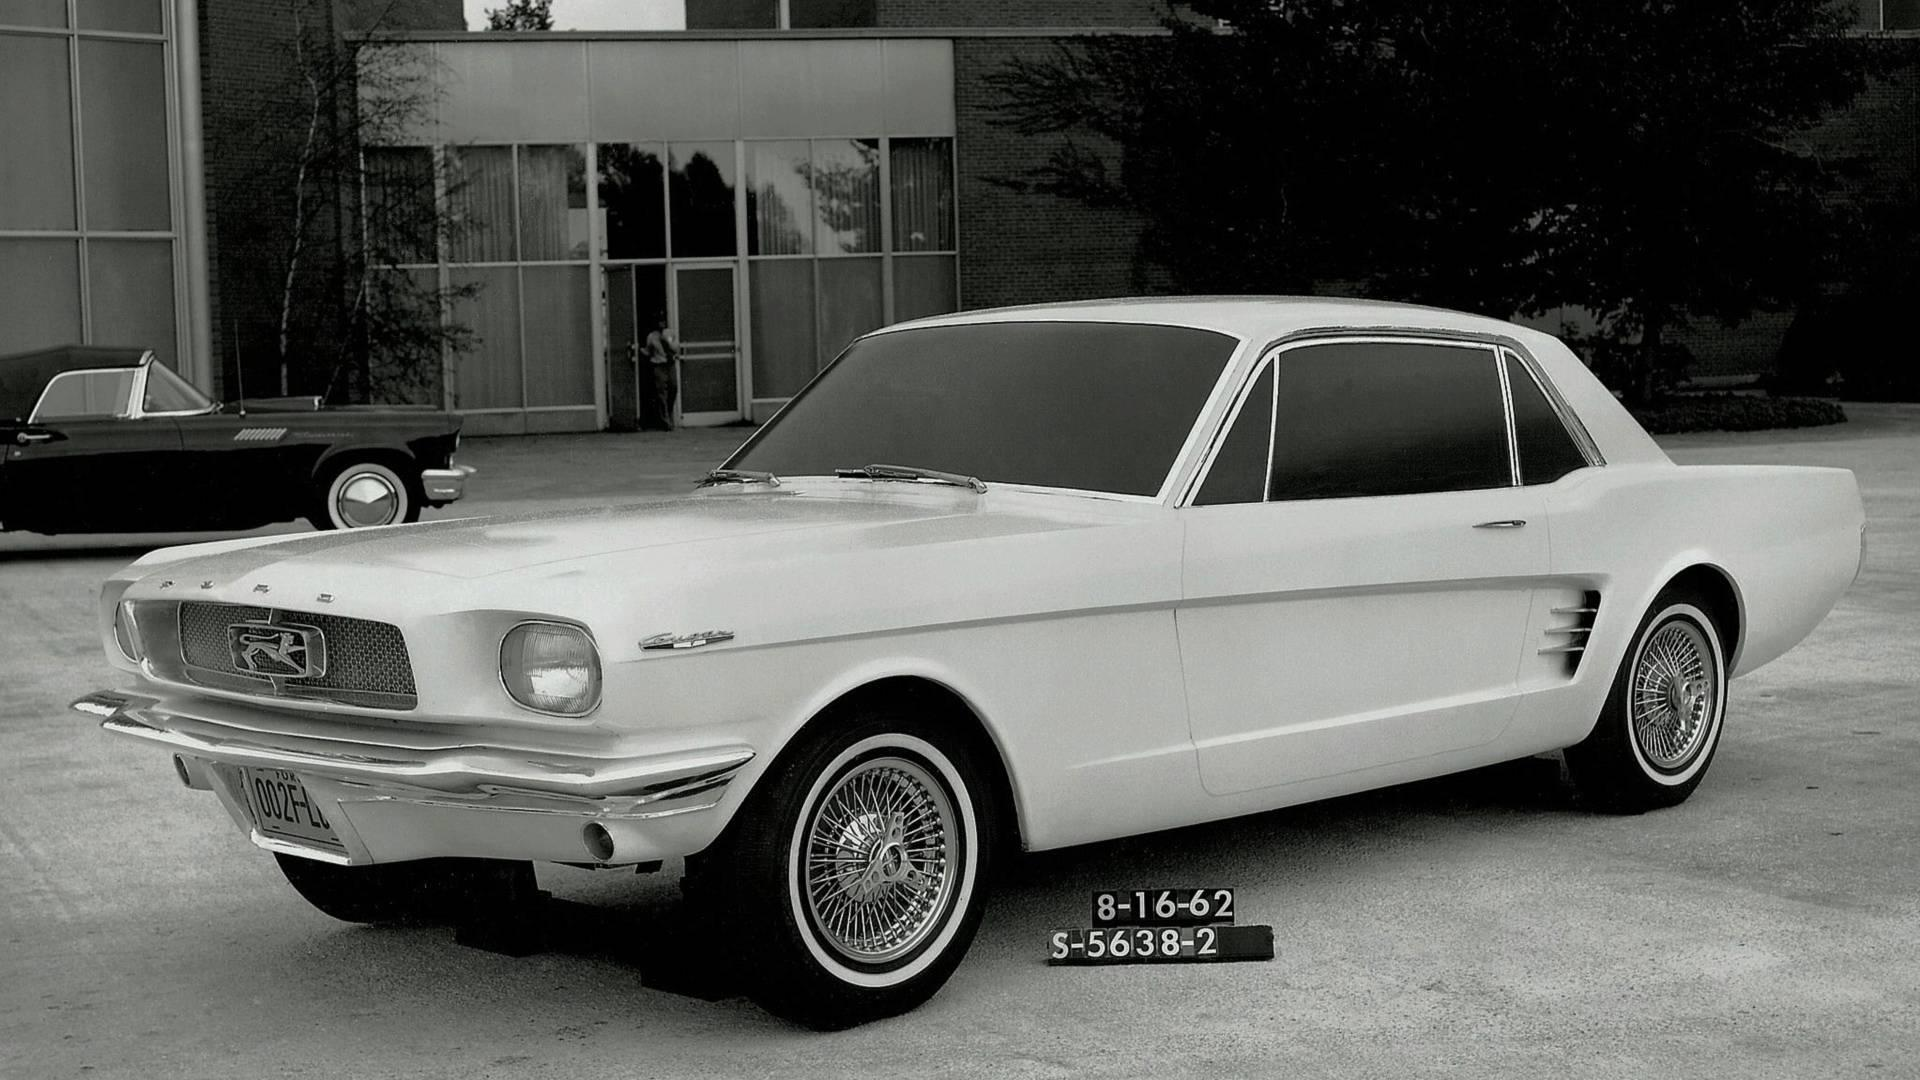 <p>The design that started the legacy is certainly familiar, but that's not a galloping horse in the grille. Ford held a design contest in the early 1960s for what would become the Mustang, but the winning shape was originally called the Cougar. We know the story from there, as the Mustang launched to considerable fanfare in 1964 and the Mercury Cougar would follow three years later.</p>